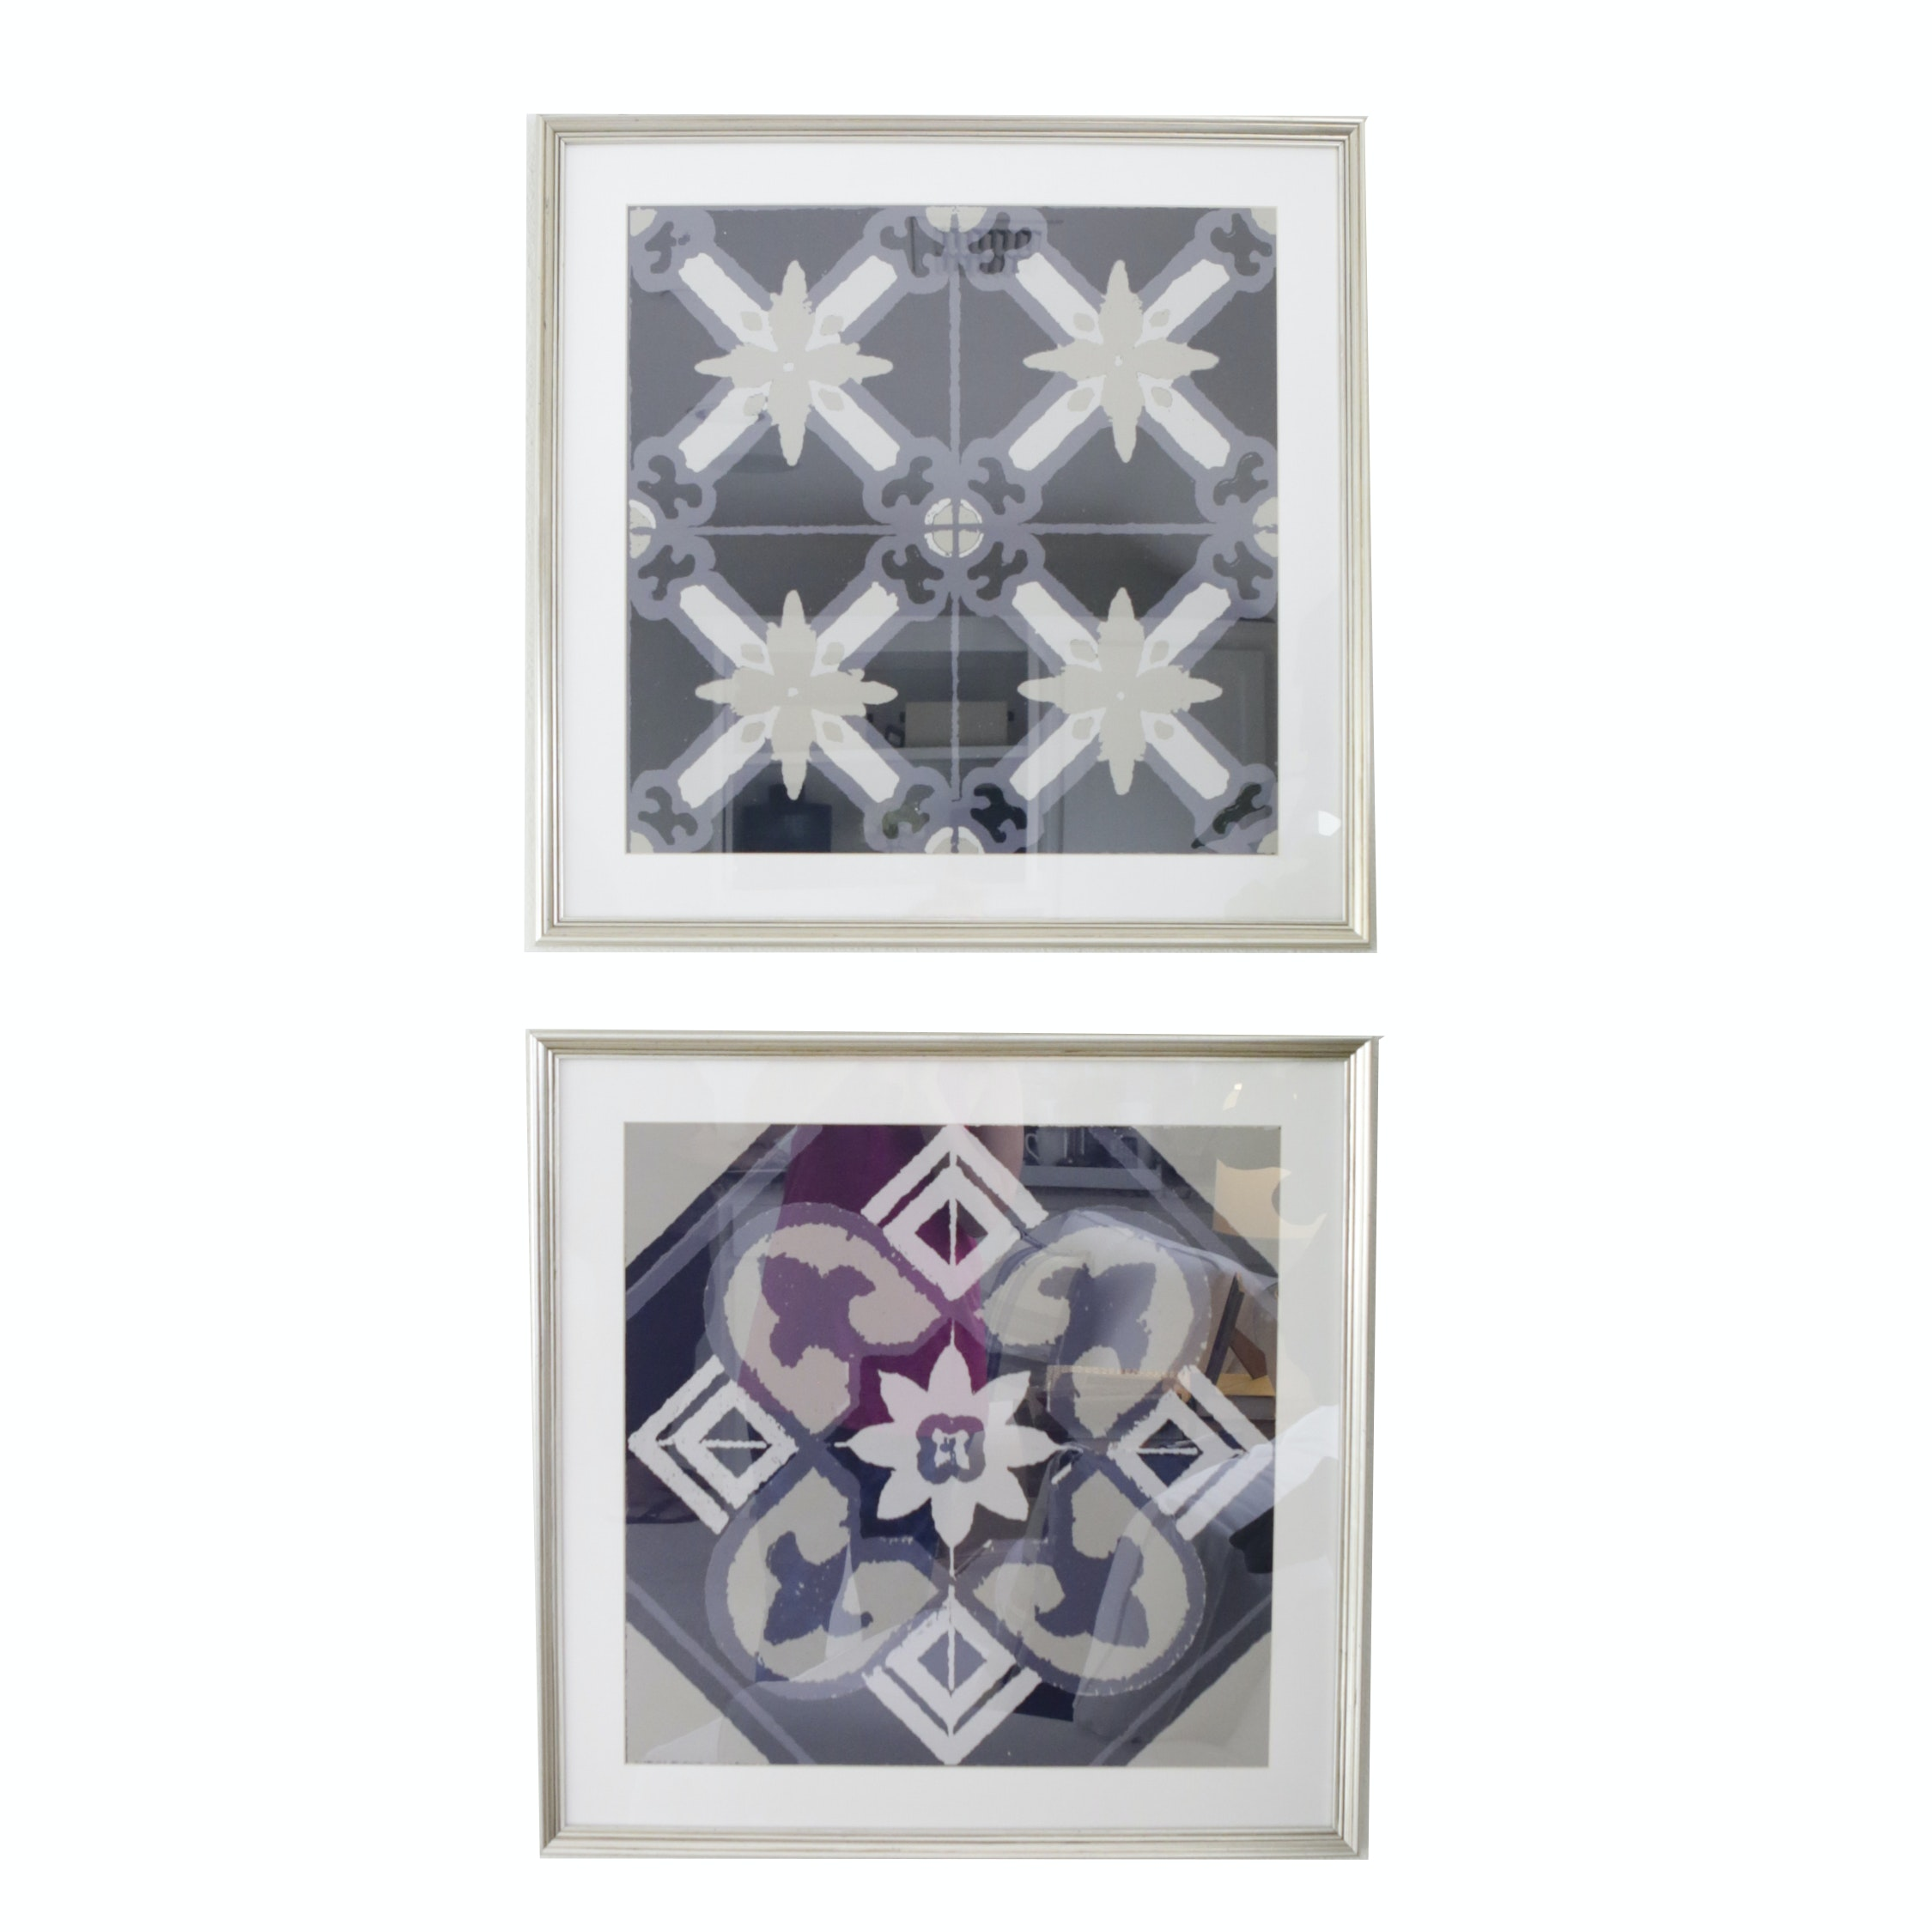 Lithograph Prints of Geometric Motifs